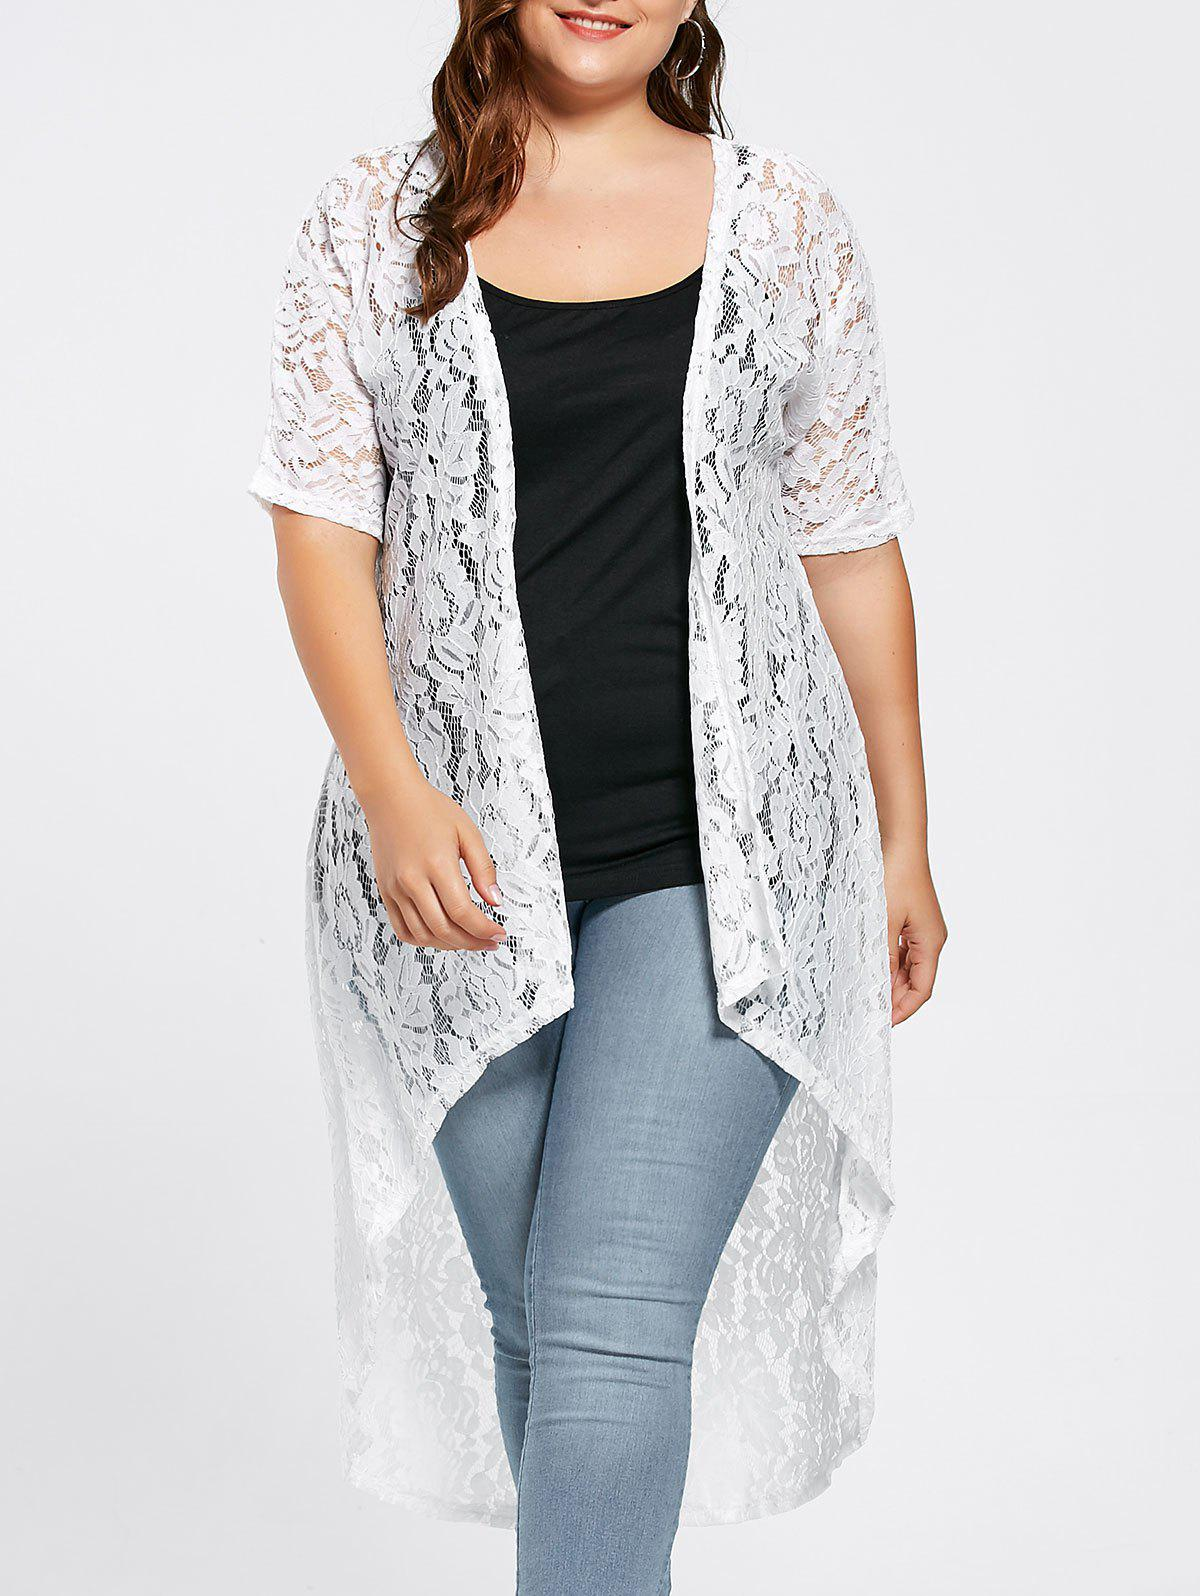 Plus Size  Long Open Front Lace Crochet CardiganWOMEN<br><br>Size: 5XL; Color: WHITE; Clothes Type: Others; Material: Cotton Blends,Polyester; Type: Asymmetric Length; Shirt Length: X-Long; Sleeve Length: Three Quarter; Collar: Collarless; Pattern Type: Solid; Embellishment: Lace; Style: Fashion; Season: Fall,Spring; Weight: 0.2700kg; Package Contents: 1 x Cardigan;